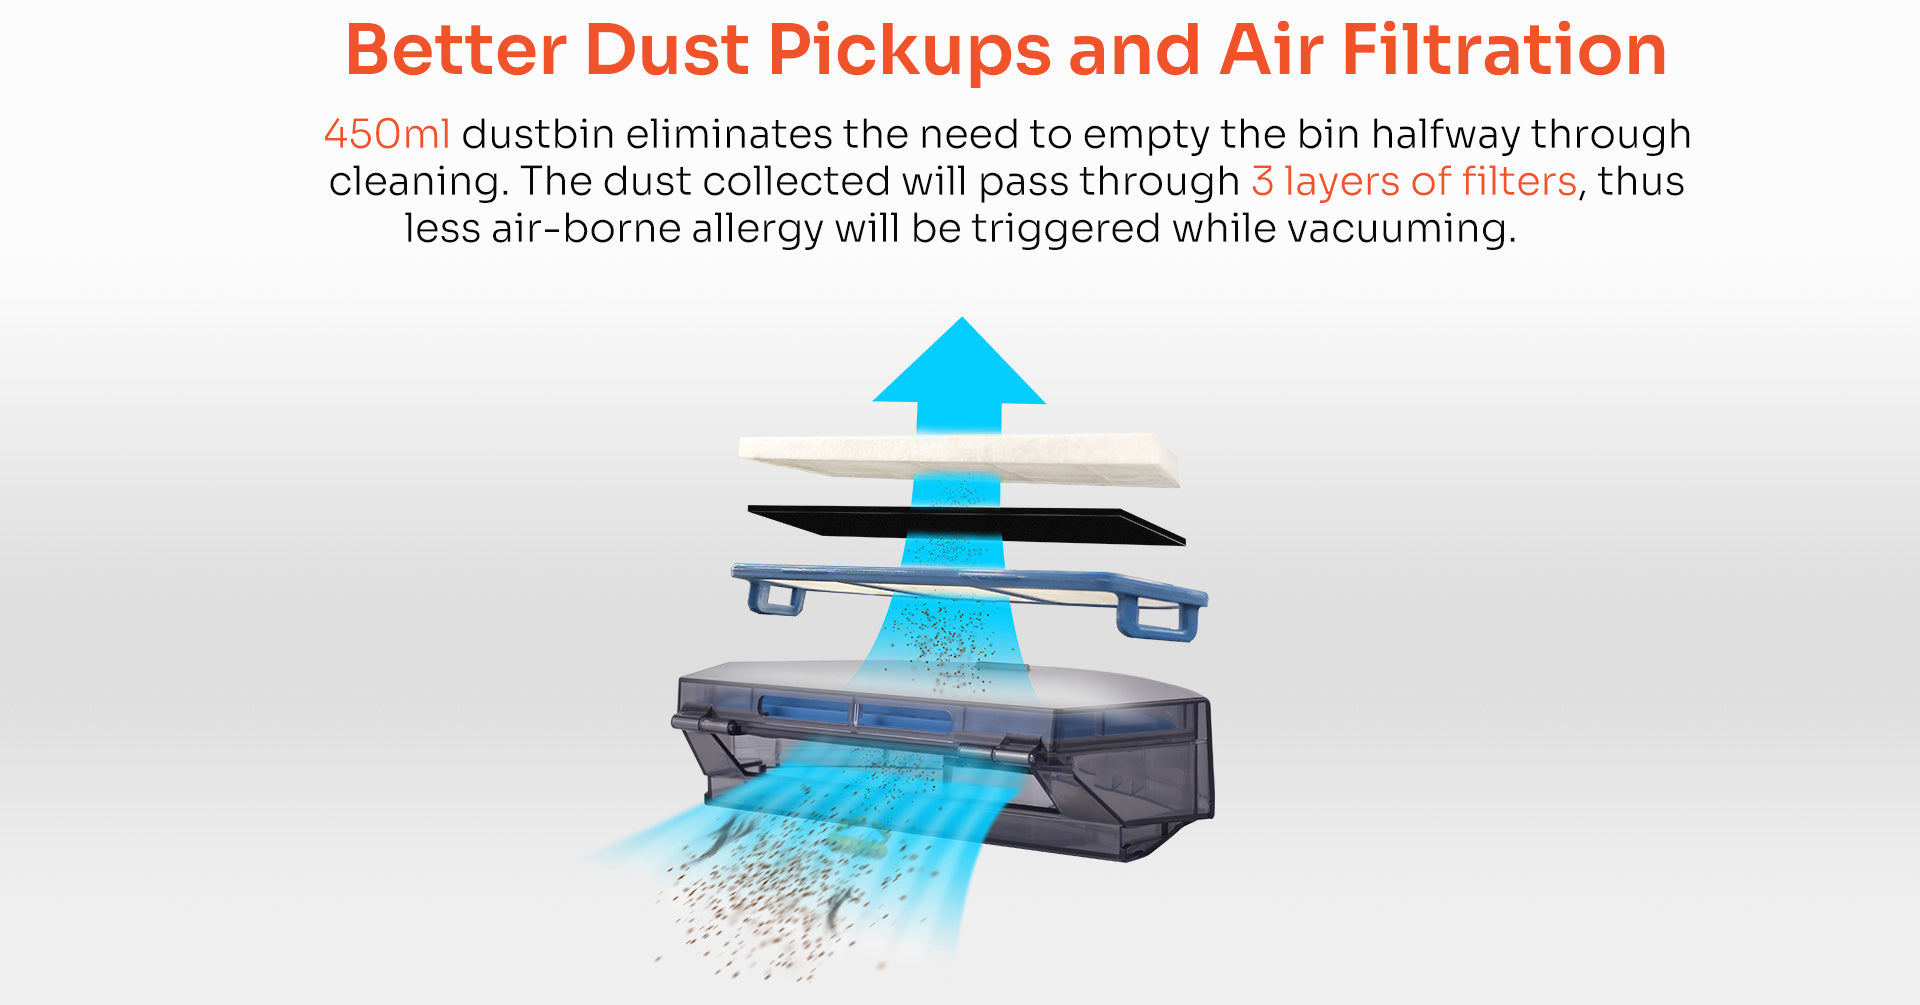 better dust pickups and air filtration